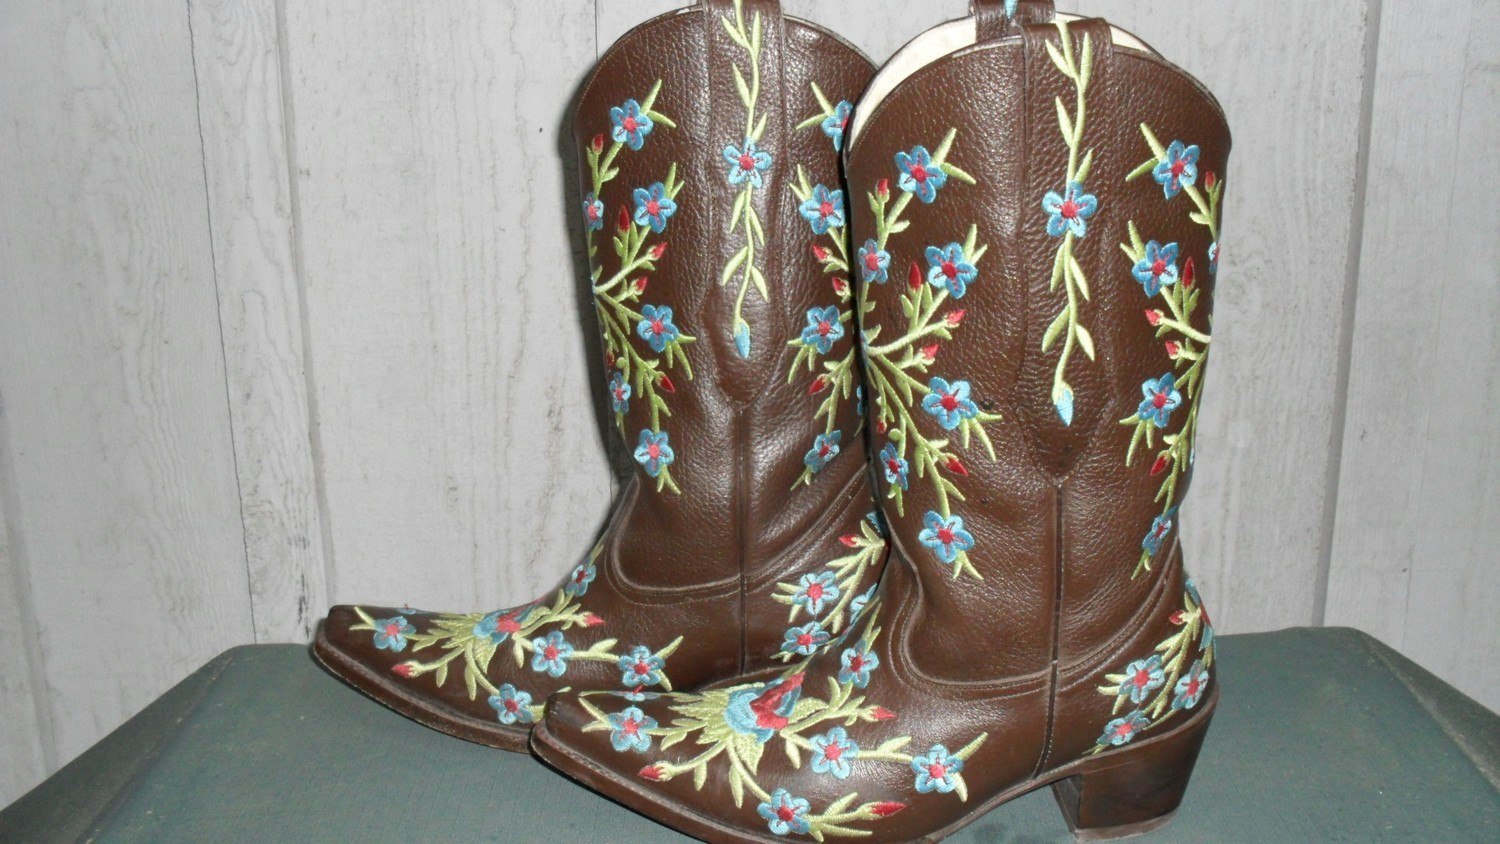 All eyes are on you and these gorgeous Turquoise Haven boots!